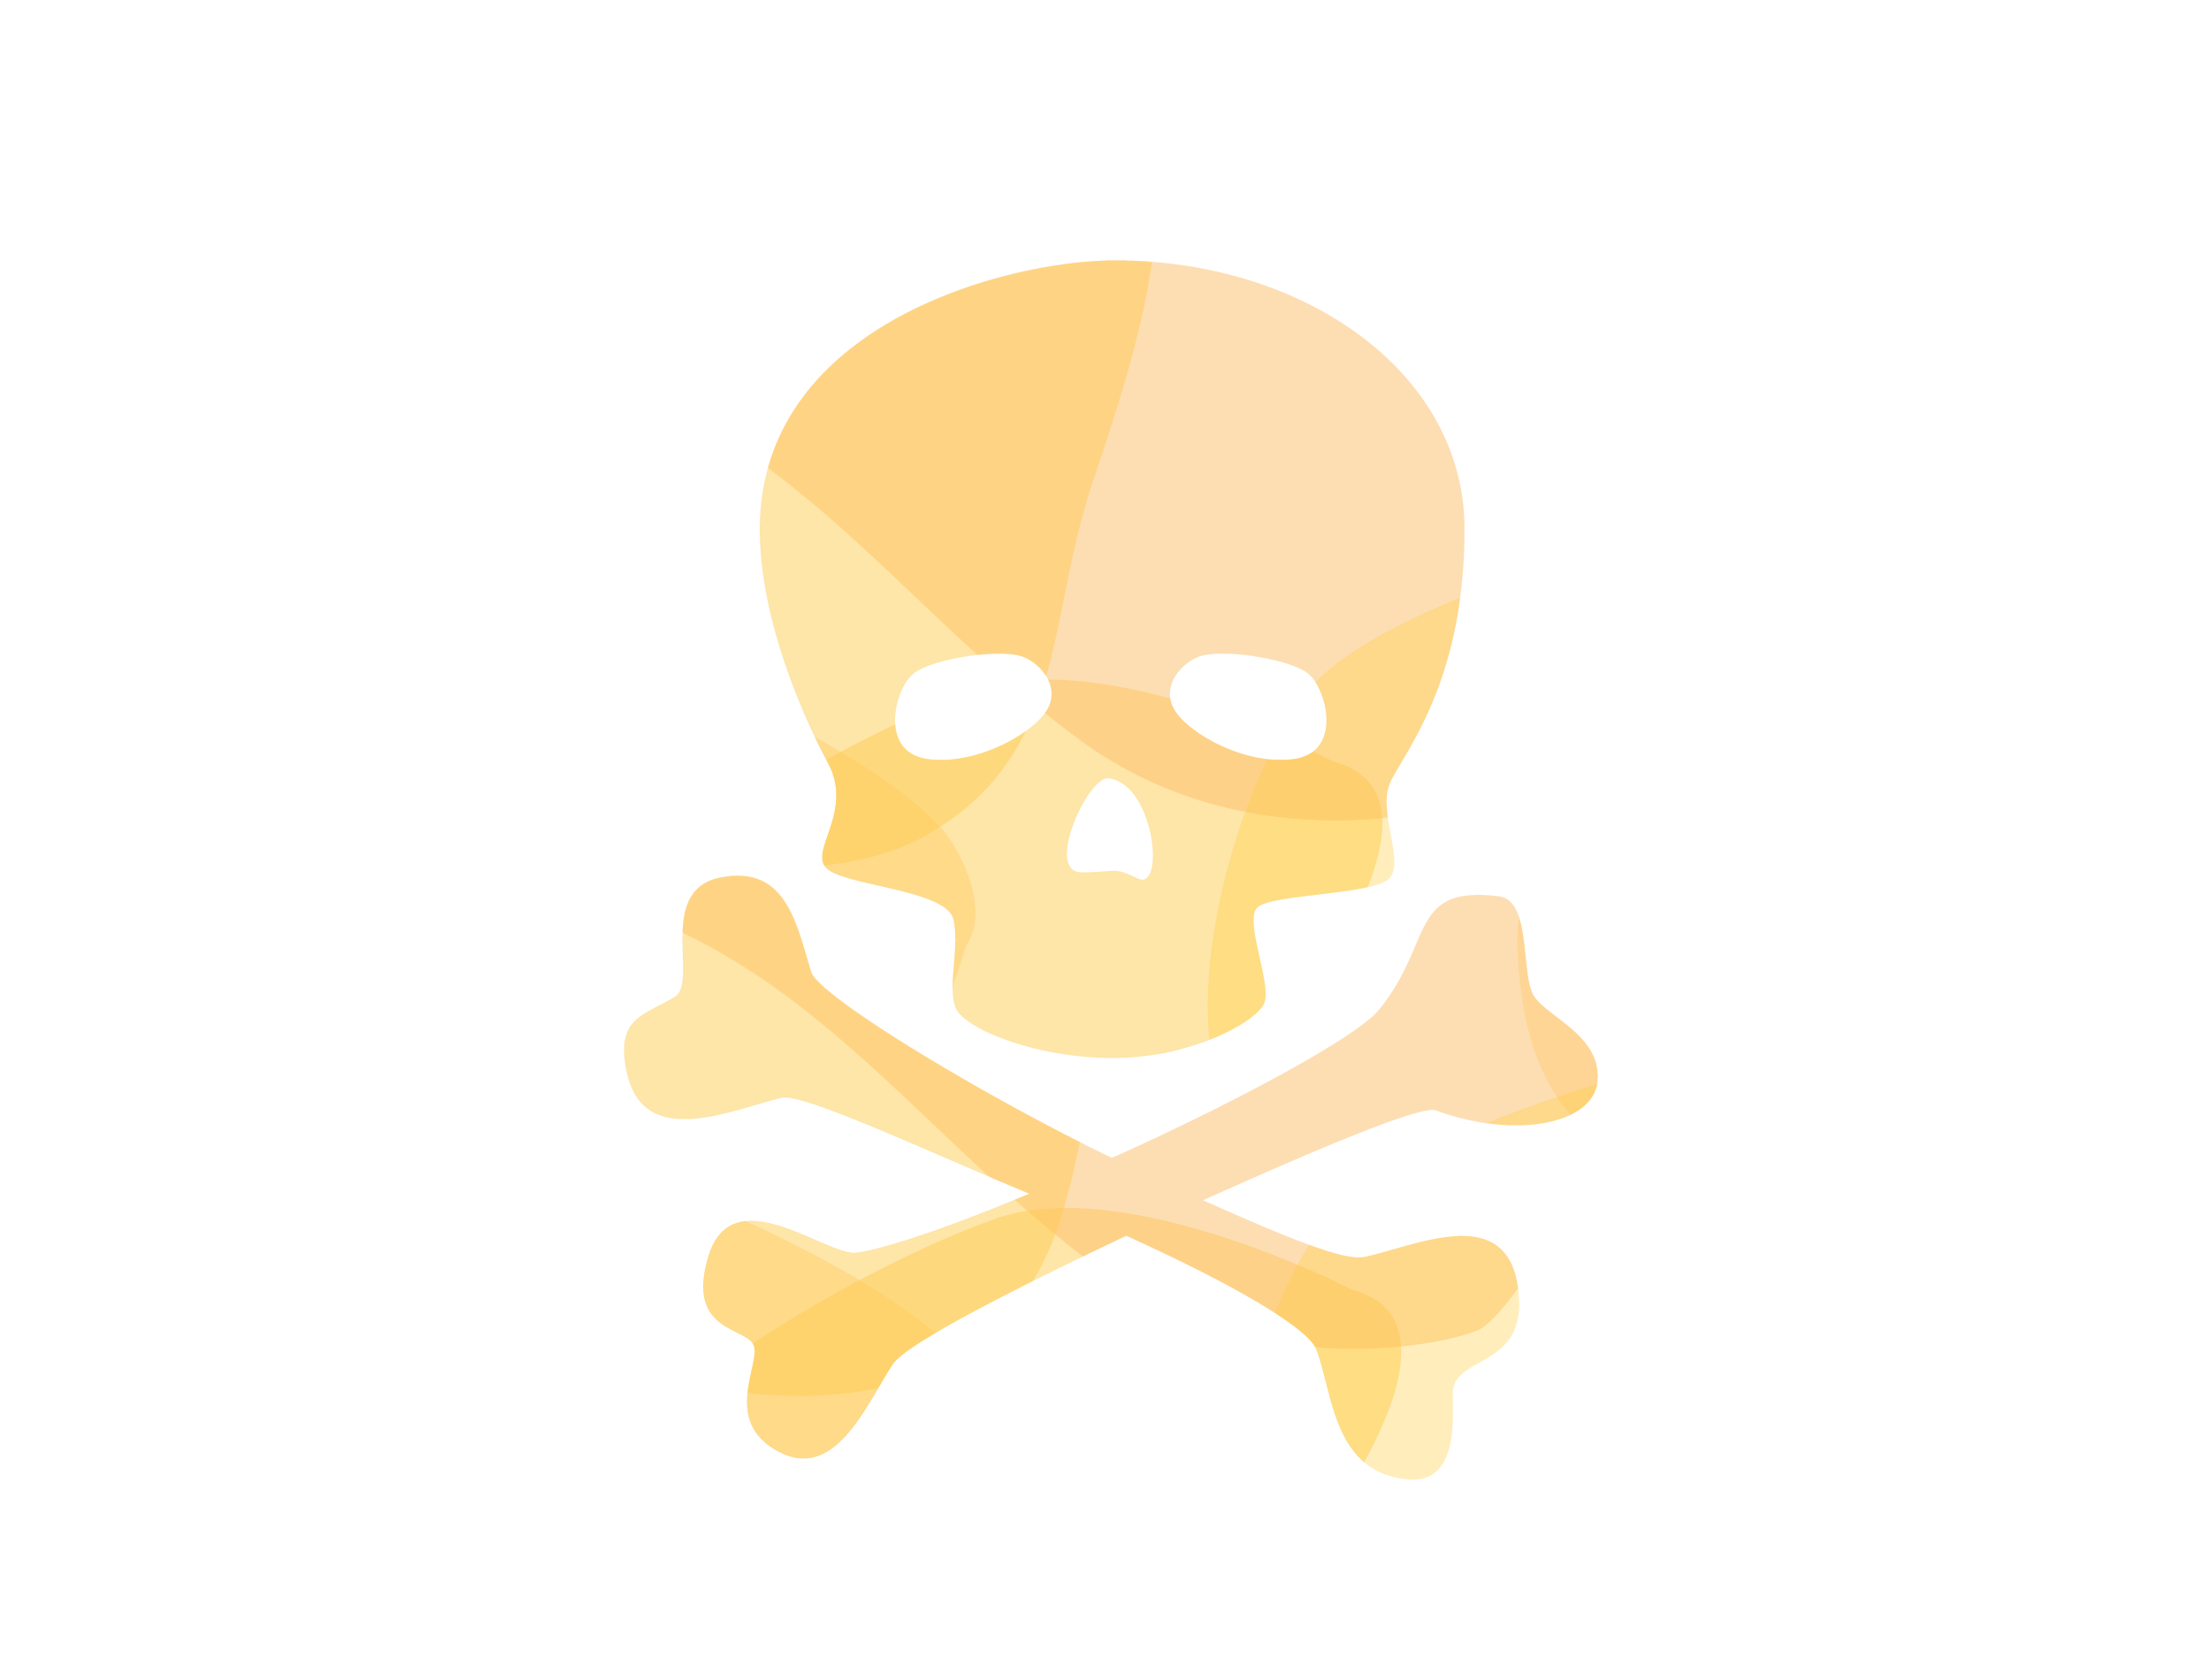 Yellow skull and crossbones illustration